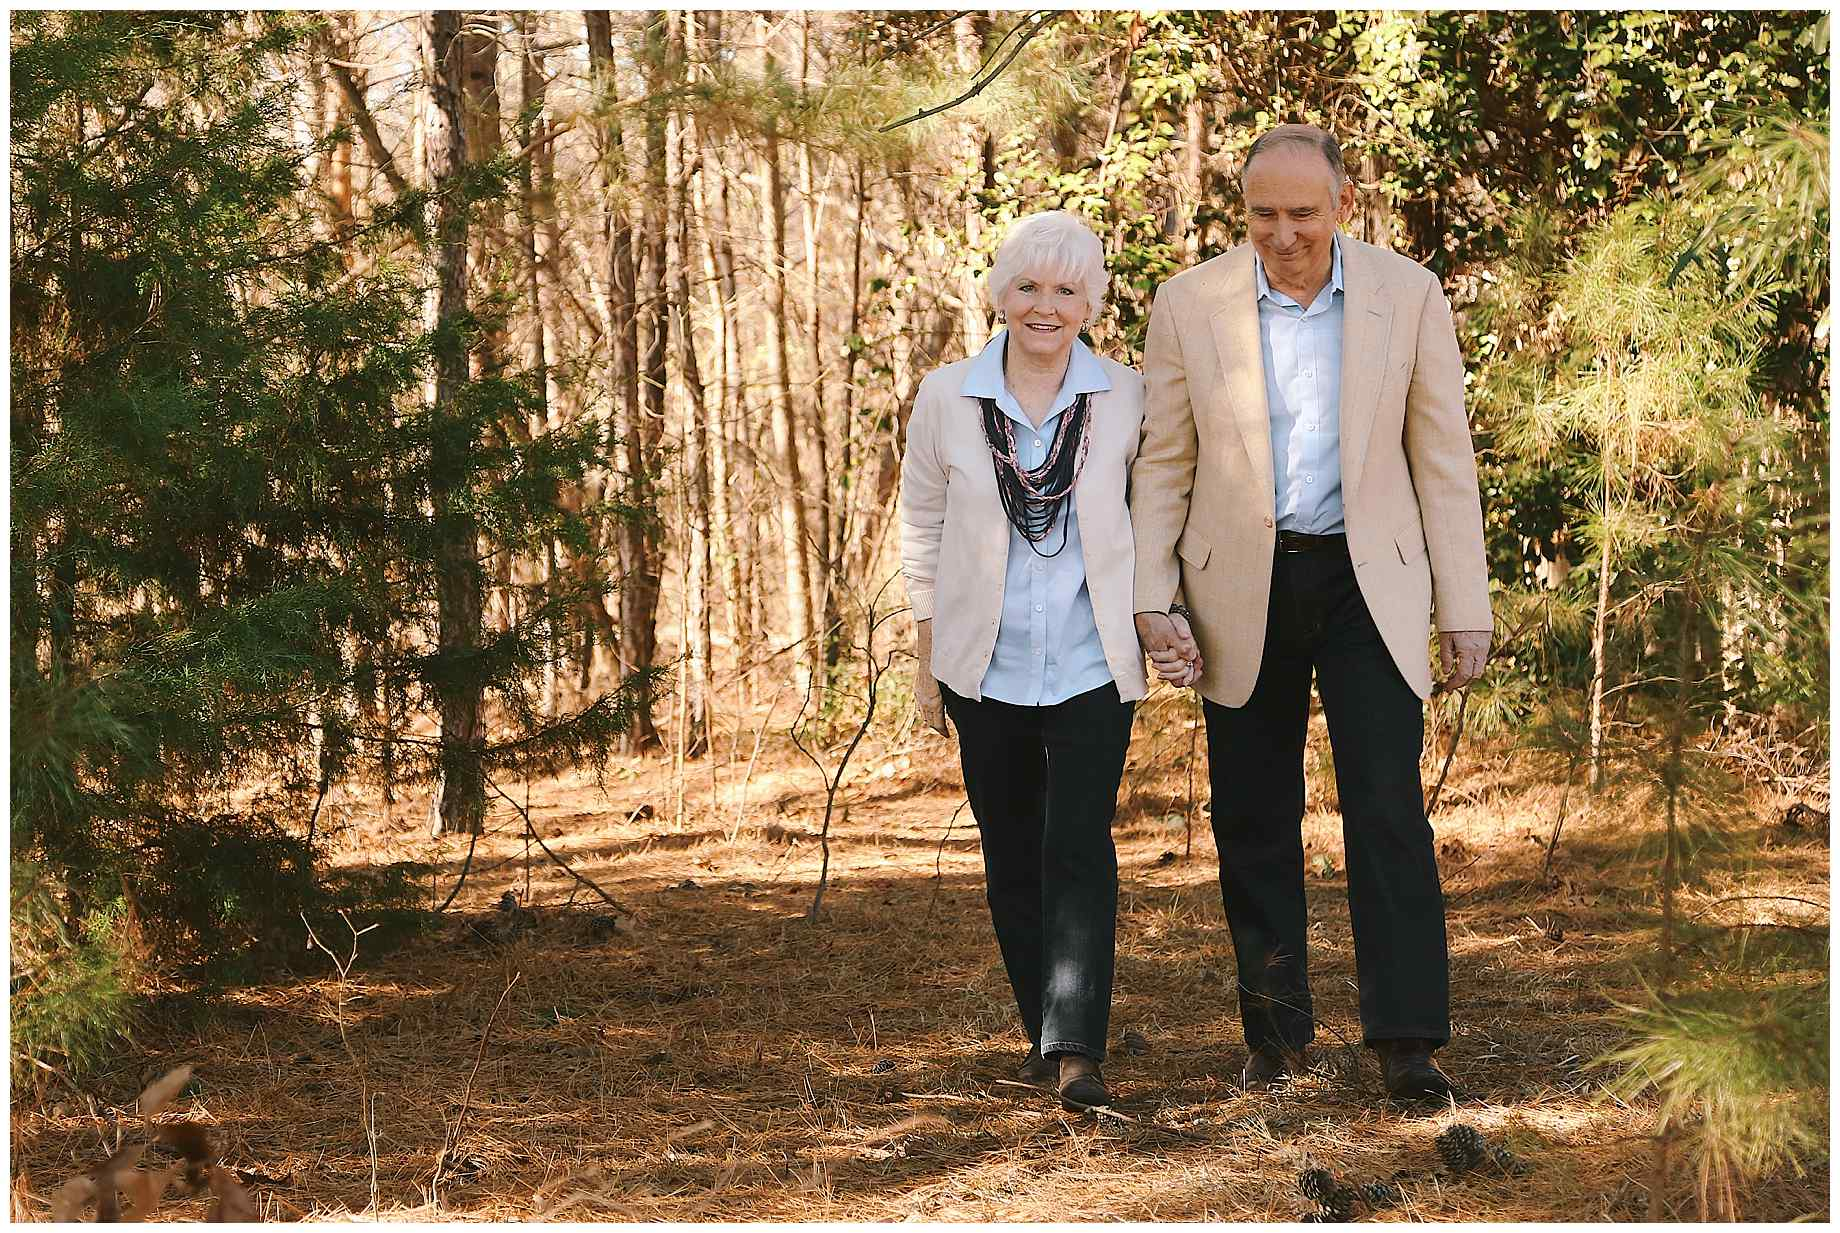 50-years-of-marriage-011